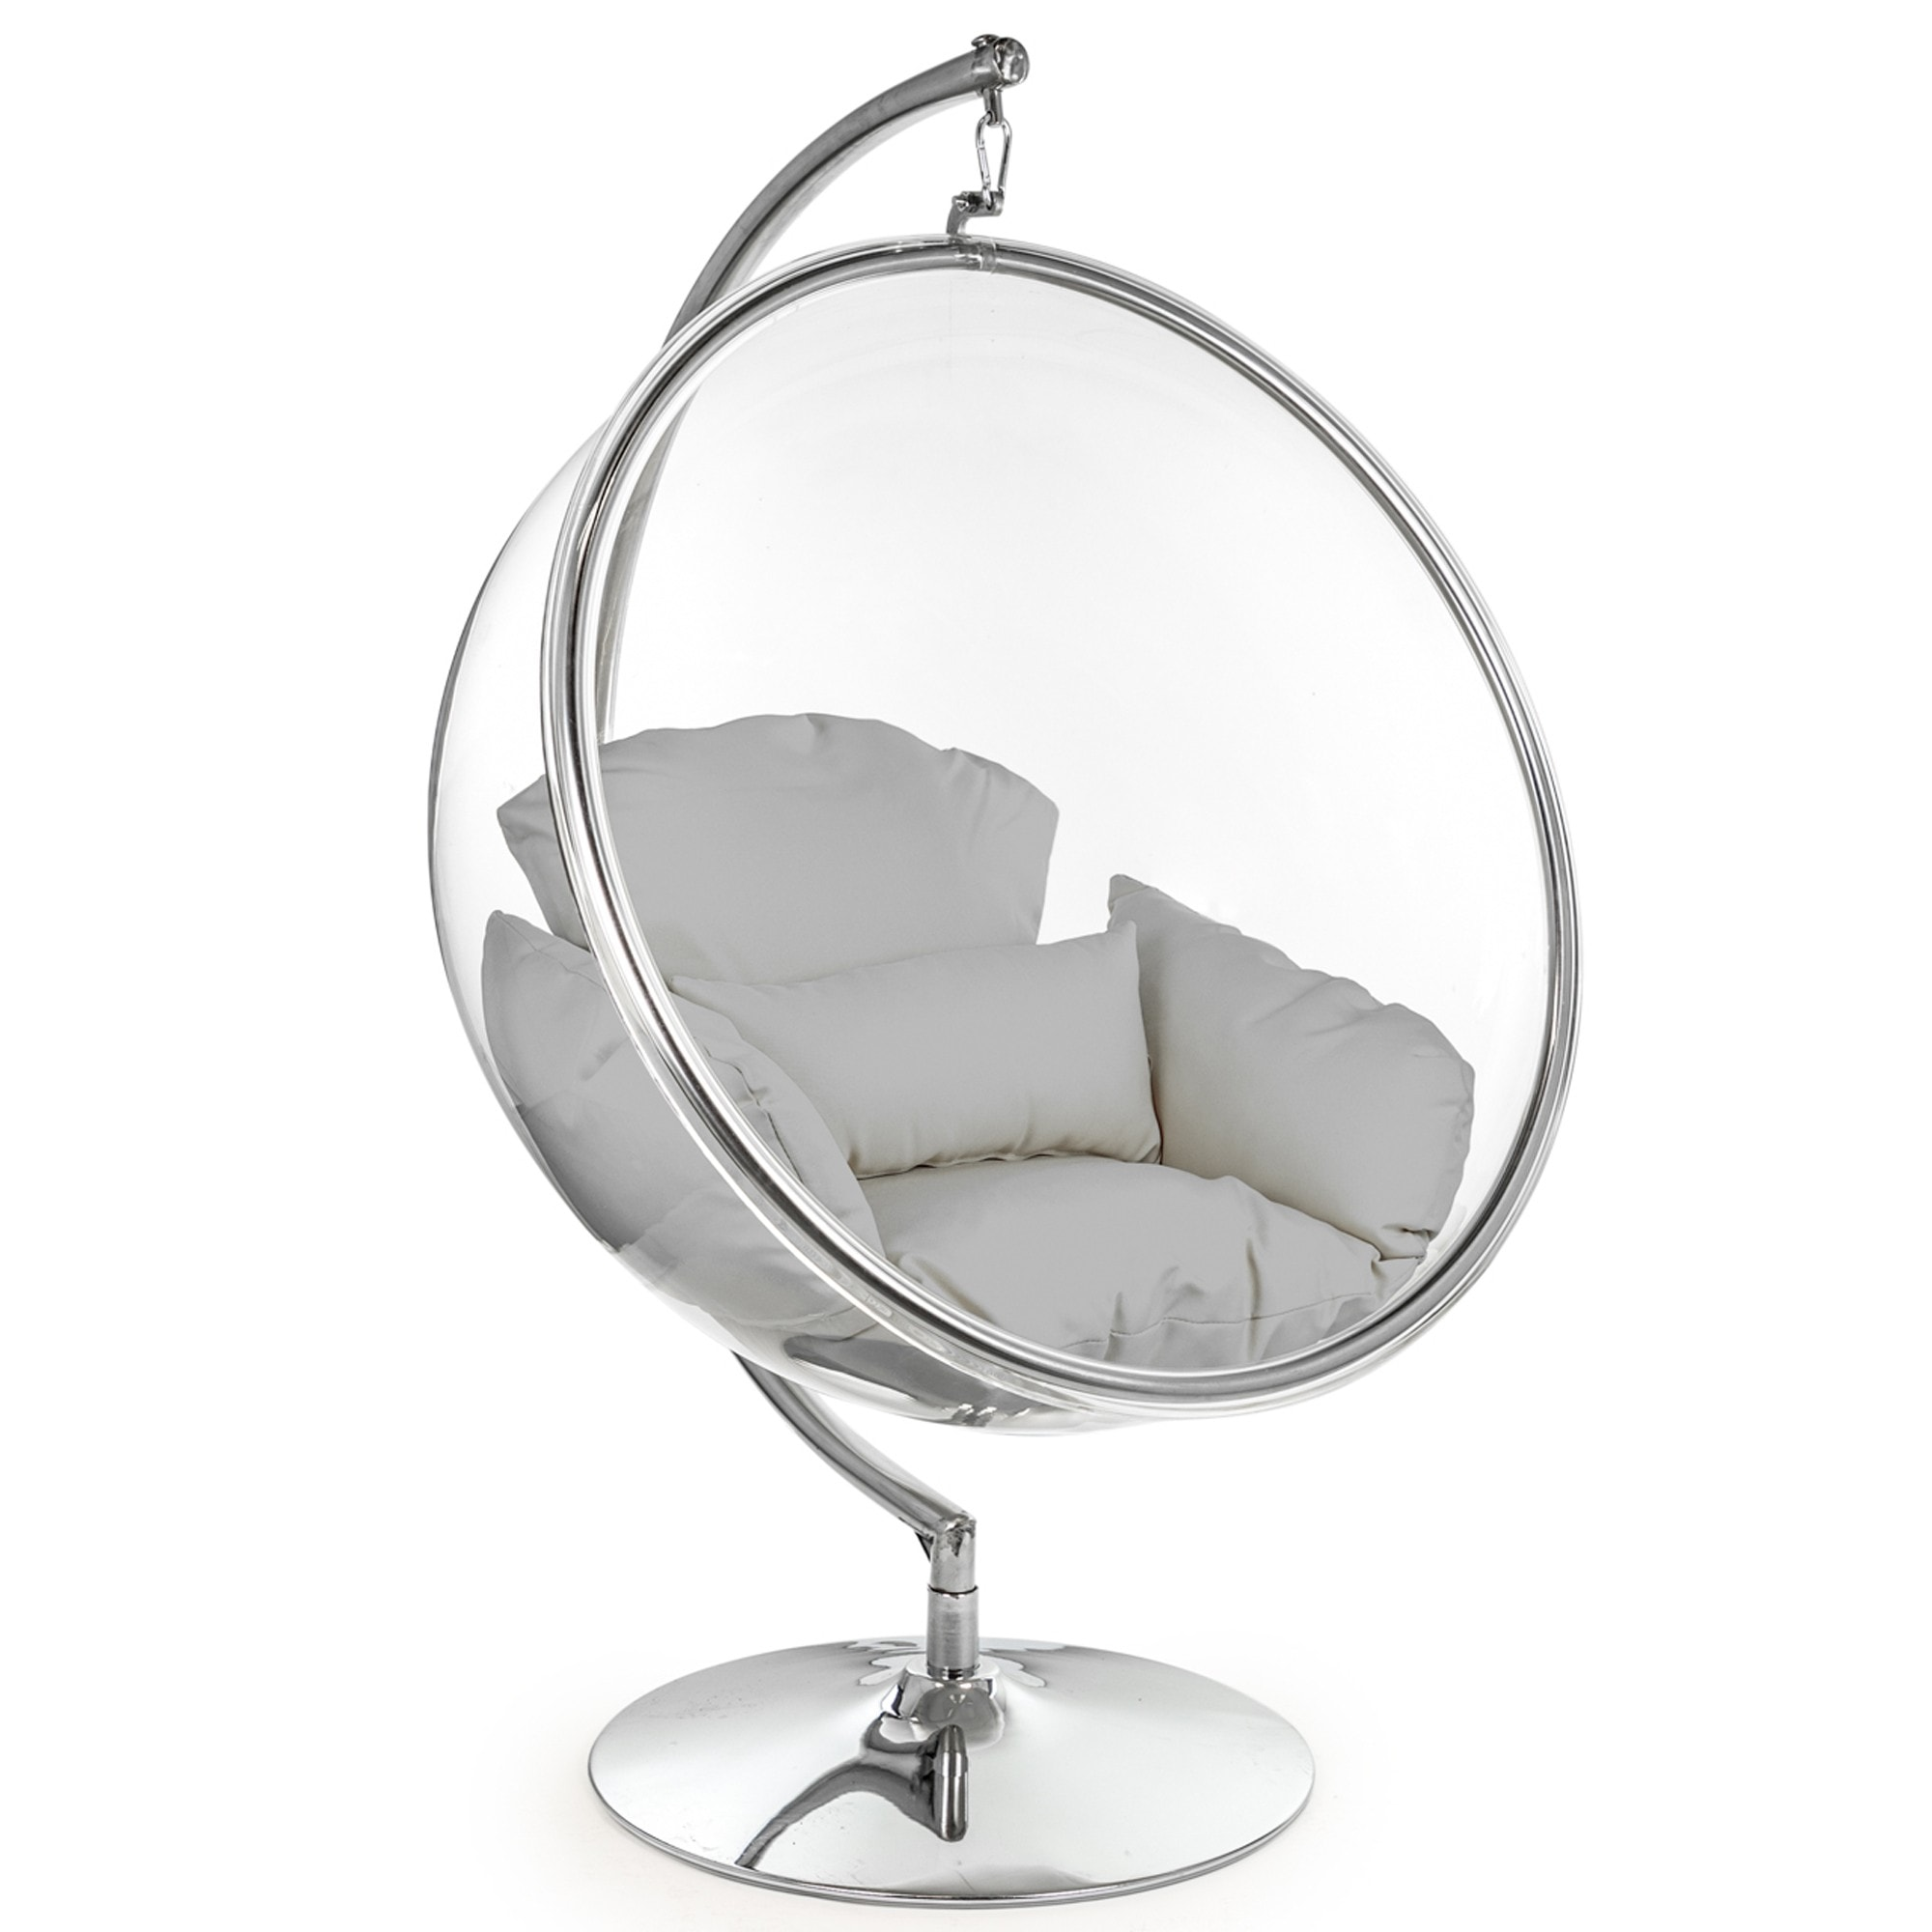 Retro Hanging Bubble Chair On Steel Base With Grey Cushion Bubble Chair Retro Chair